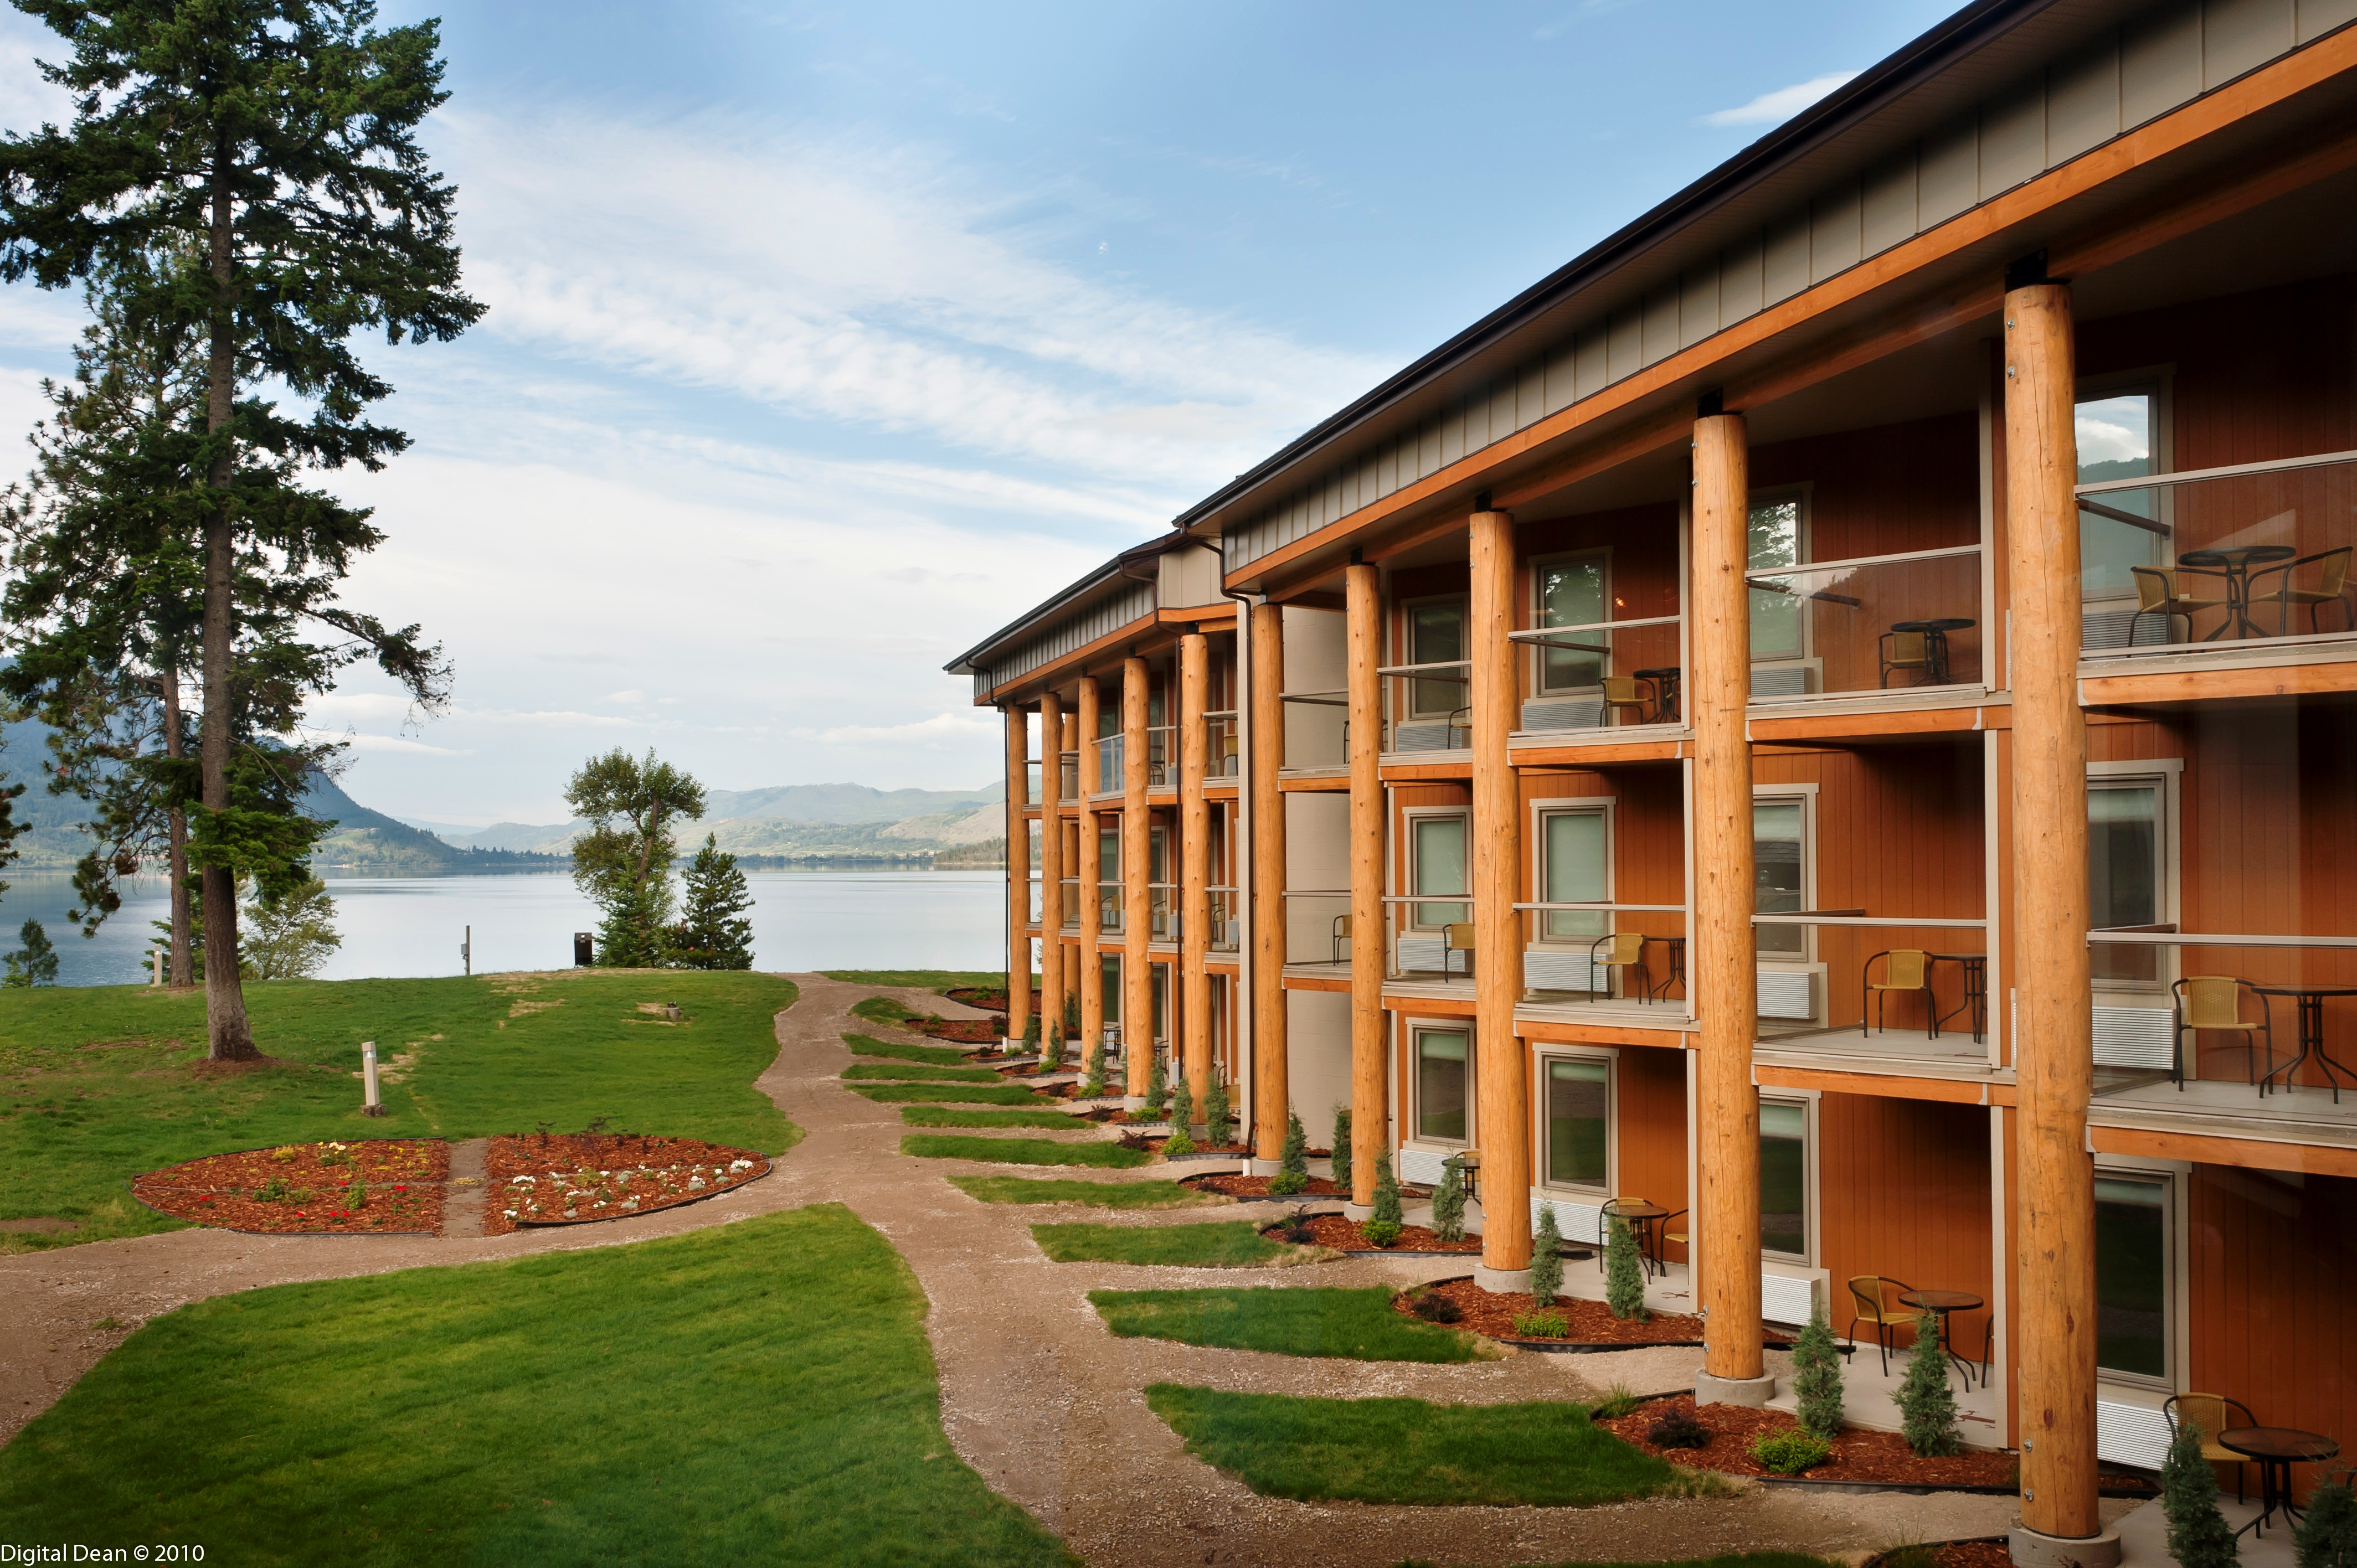 Gathering Place for R&R Seekers - and Golfers - Aboriginal Tourism BC